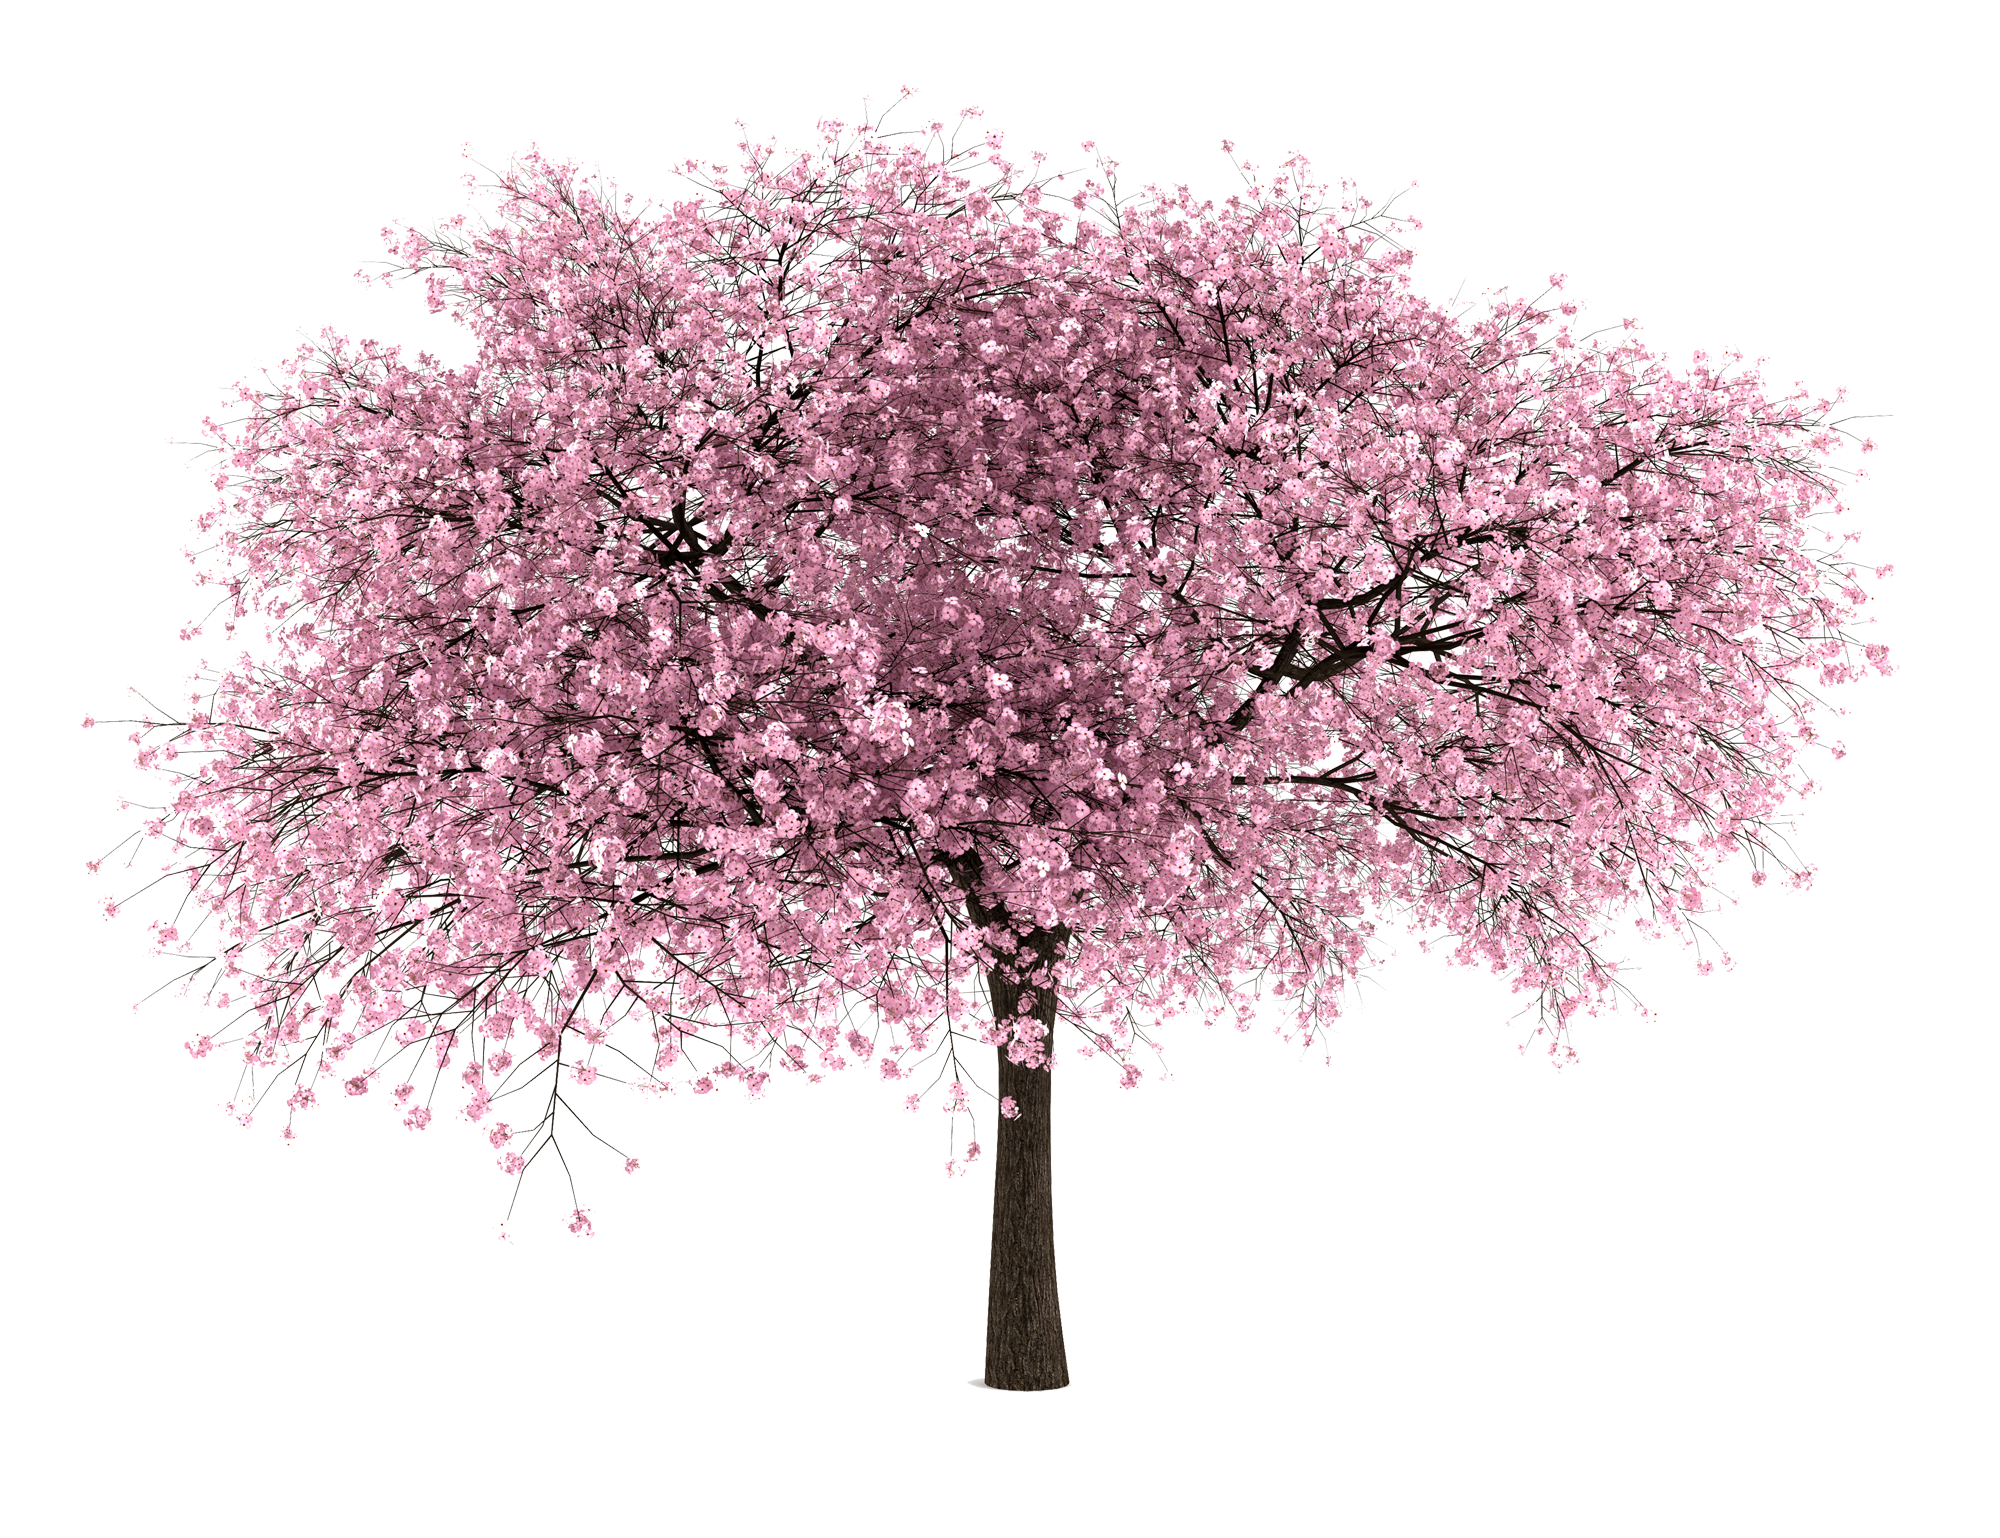 20 Tree Png Images Free Cutouts For Architecture Landscape Interior Renderings Cherry Blossom Tree Tree Photoshop Blossom Trees